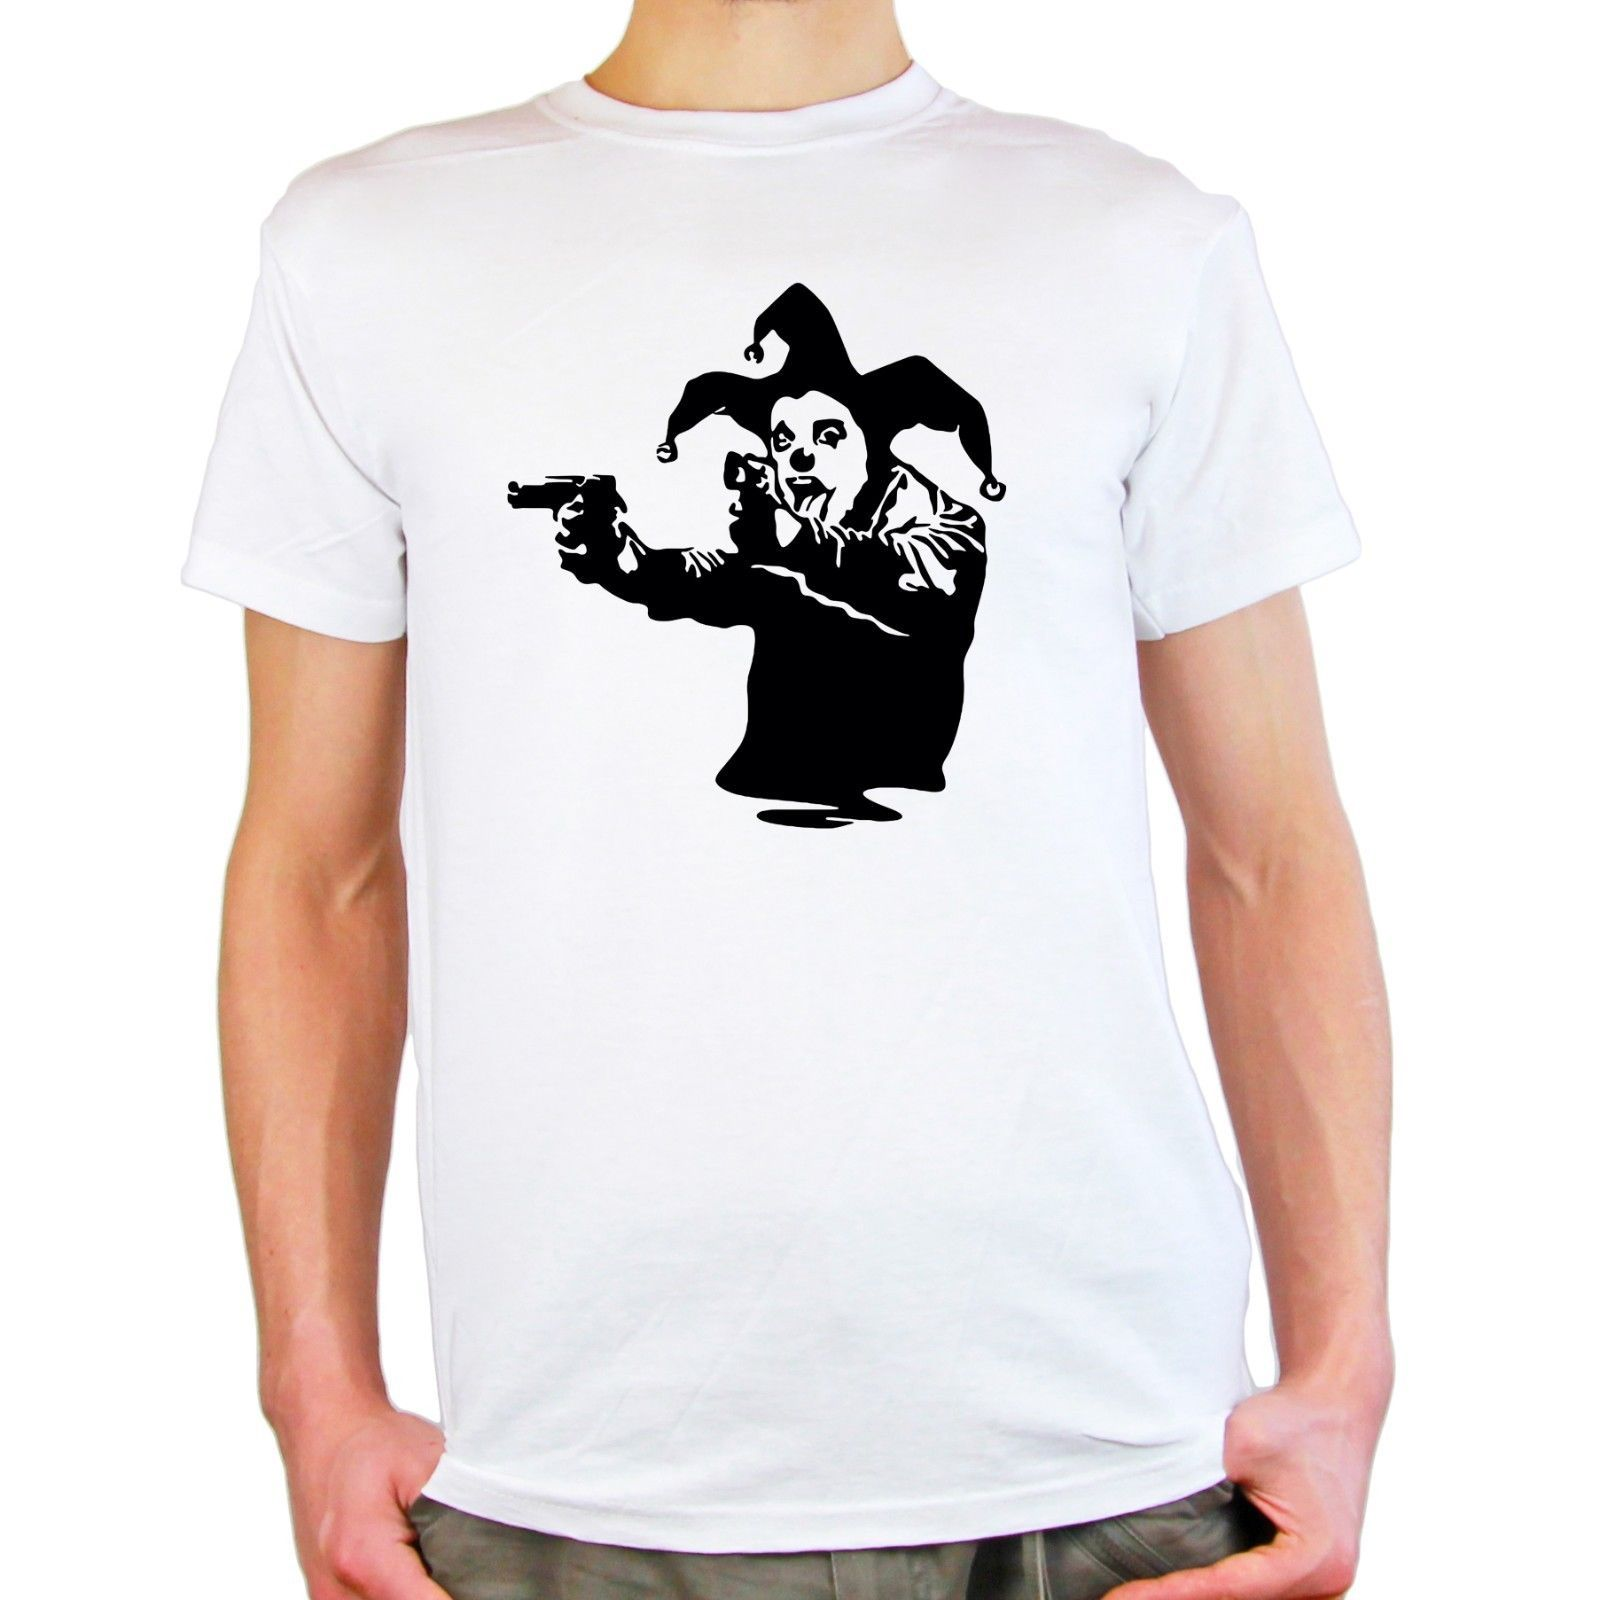 9962f7b01c8c2 Click to Buy    Men s Short Sleeve Printing Machine T-Shirt Banksy ...